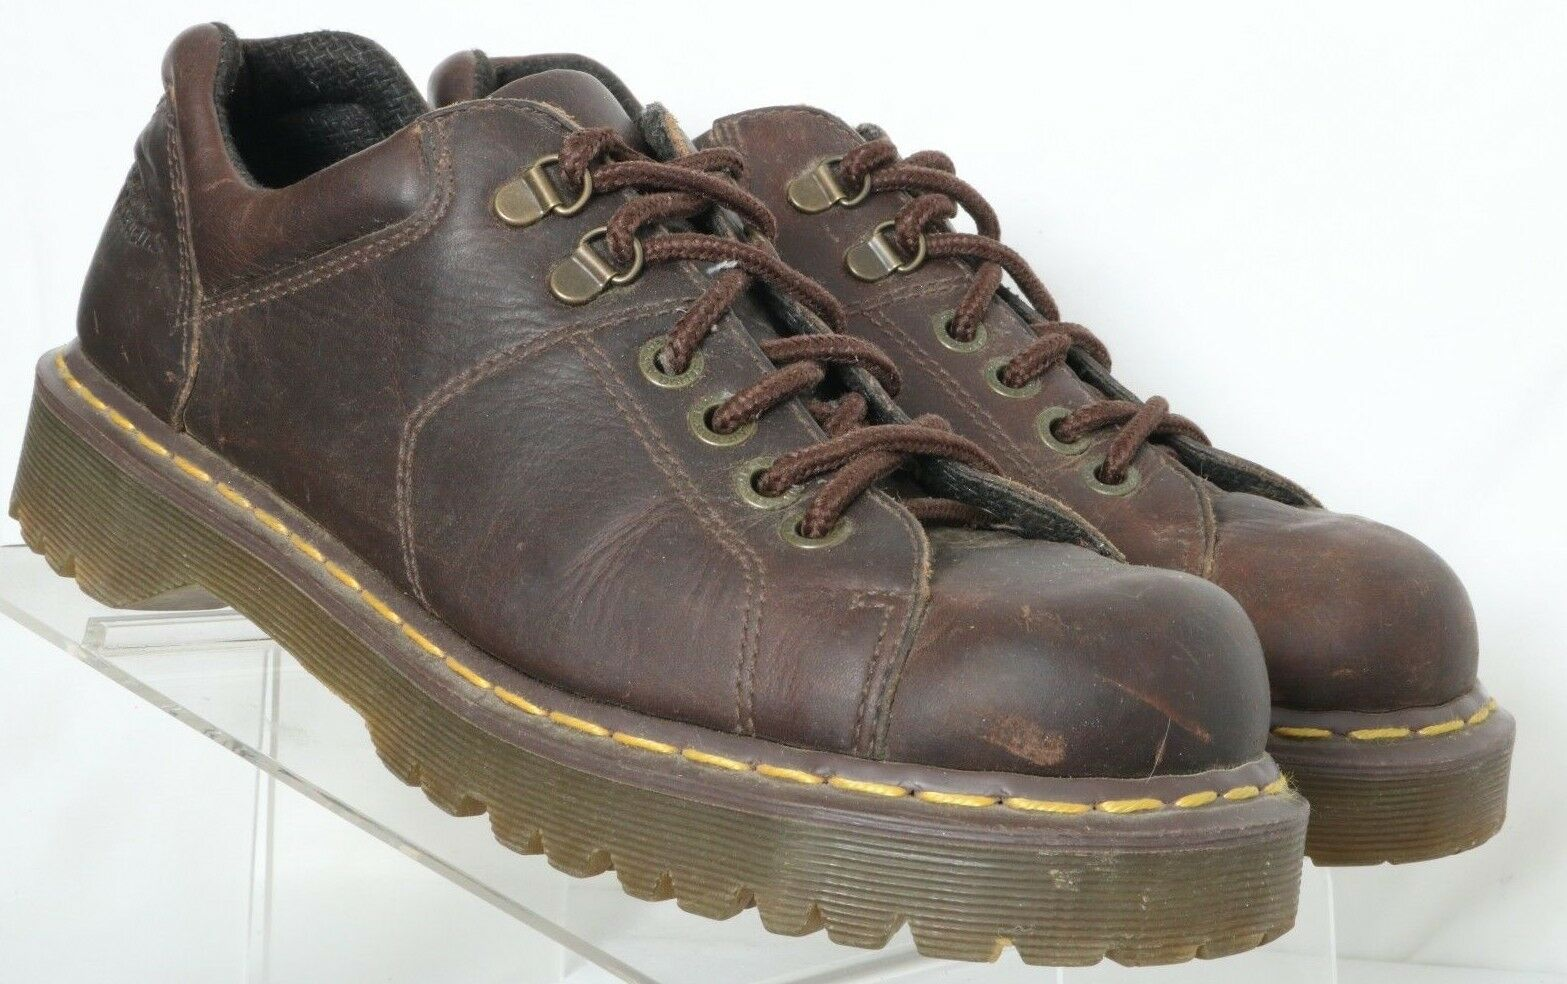 Dr. Marten's Doc Grizzly Brown Leather Casual Low Boot 8312 Men's US 10